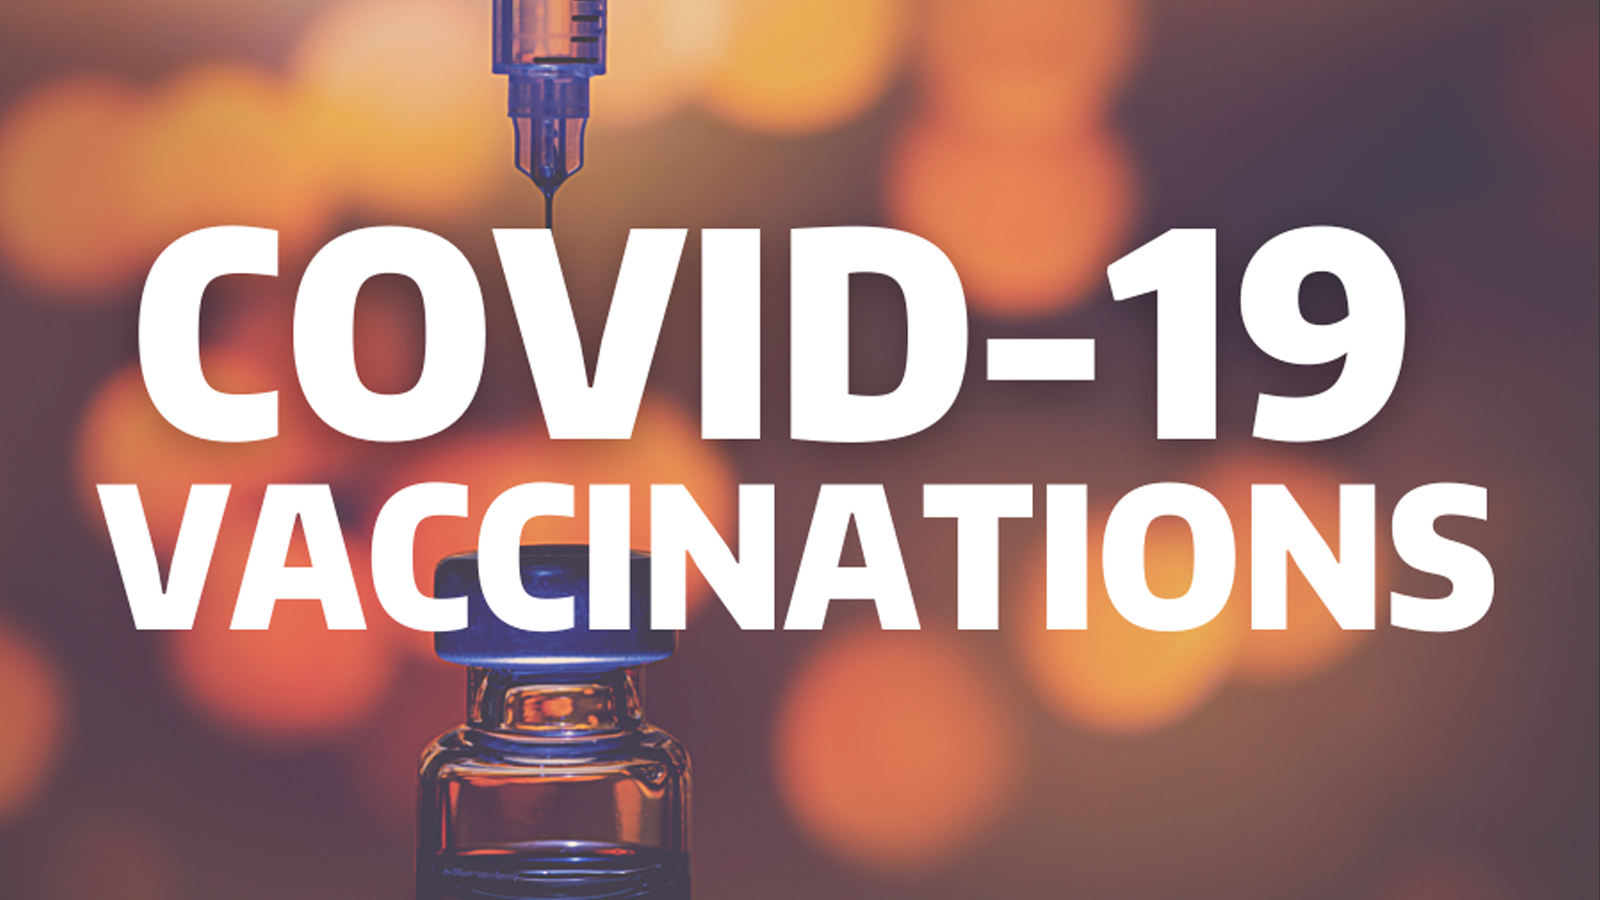 Image of syringe and vaccine vile in background with the words covid-19 vaccinations on top.